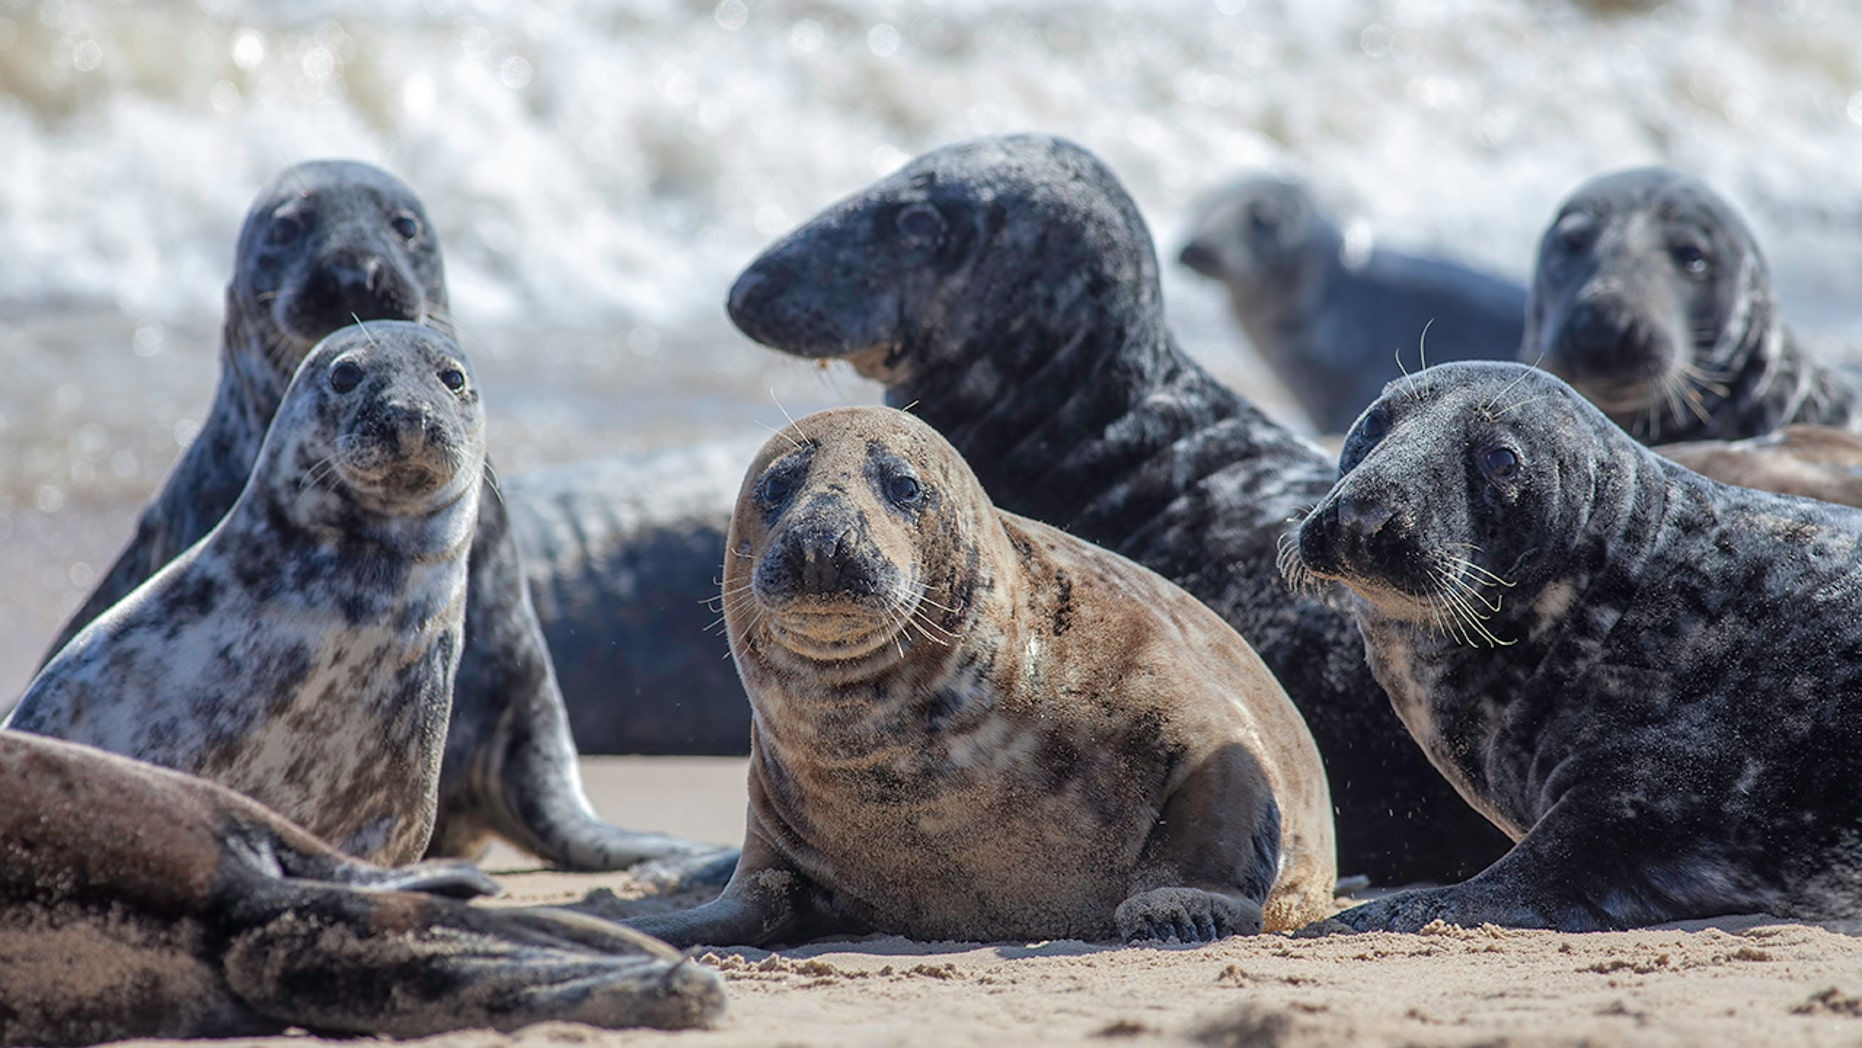 A fisherman in Scotland had to be rescued after encountering a group of aggressive seals, officials said. (istock)